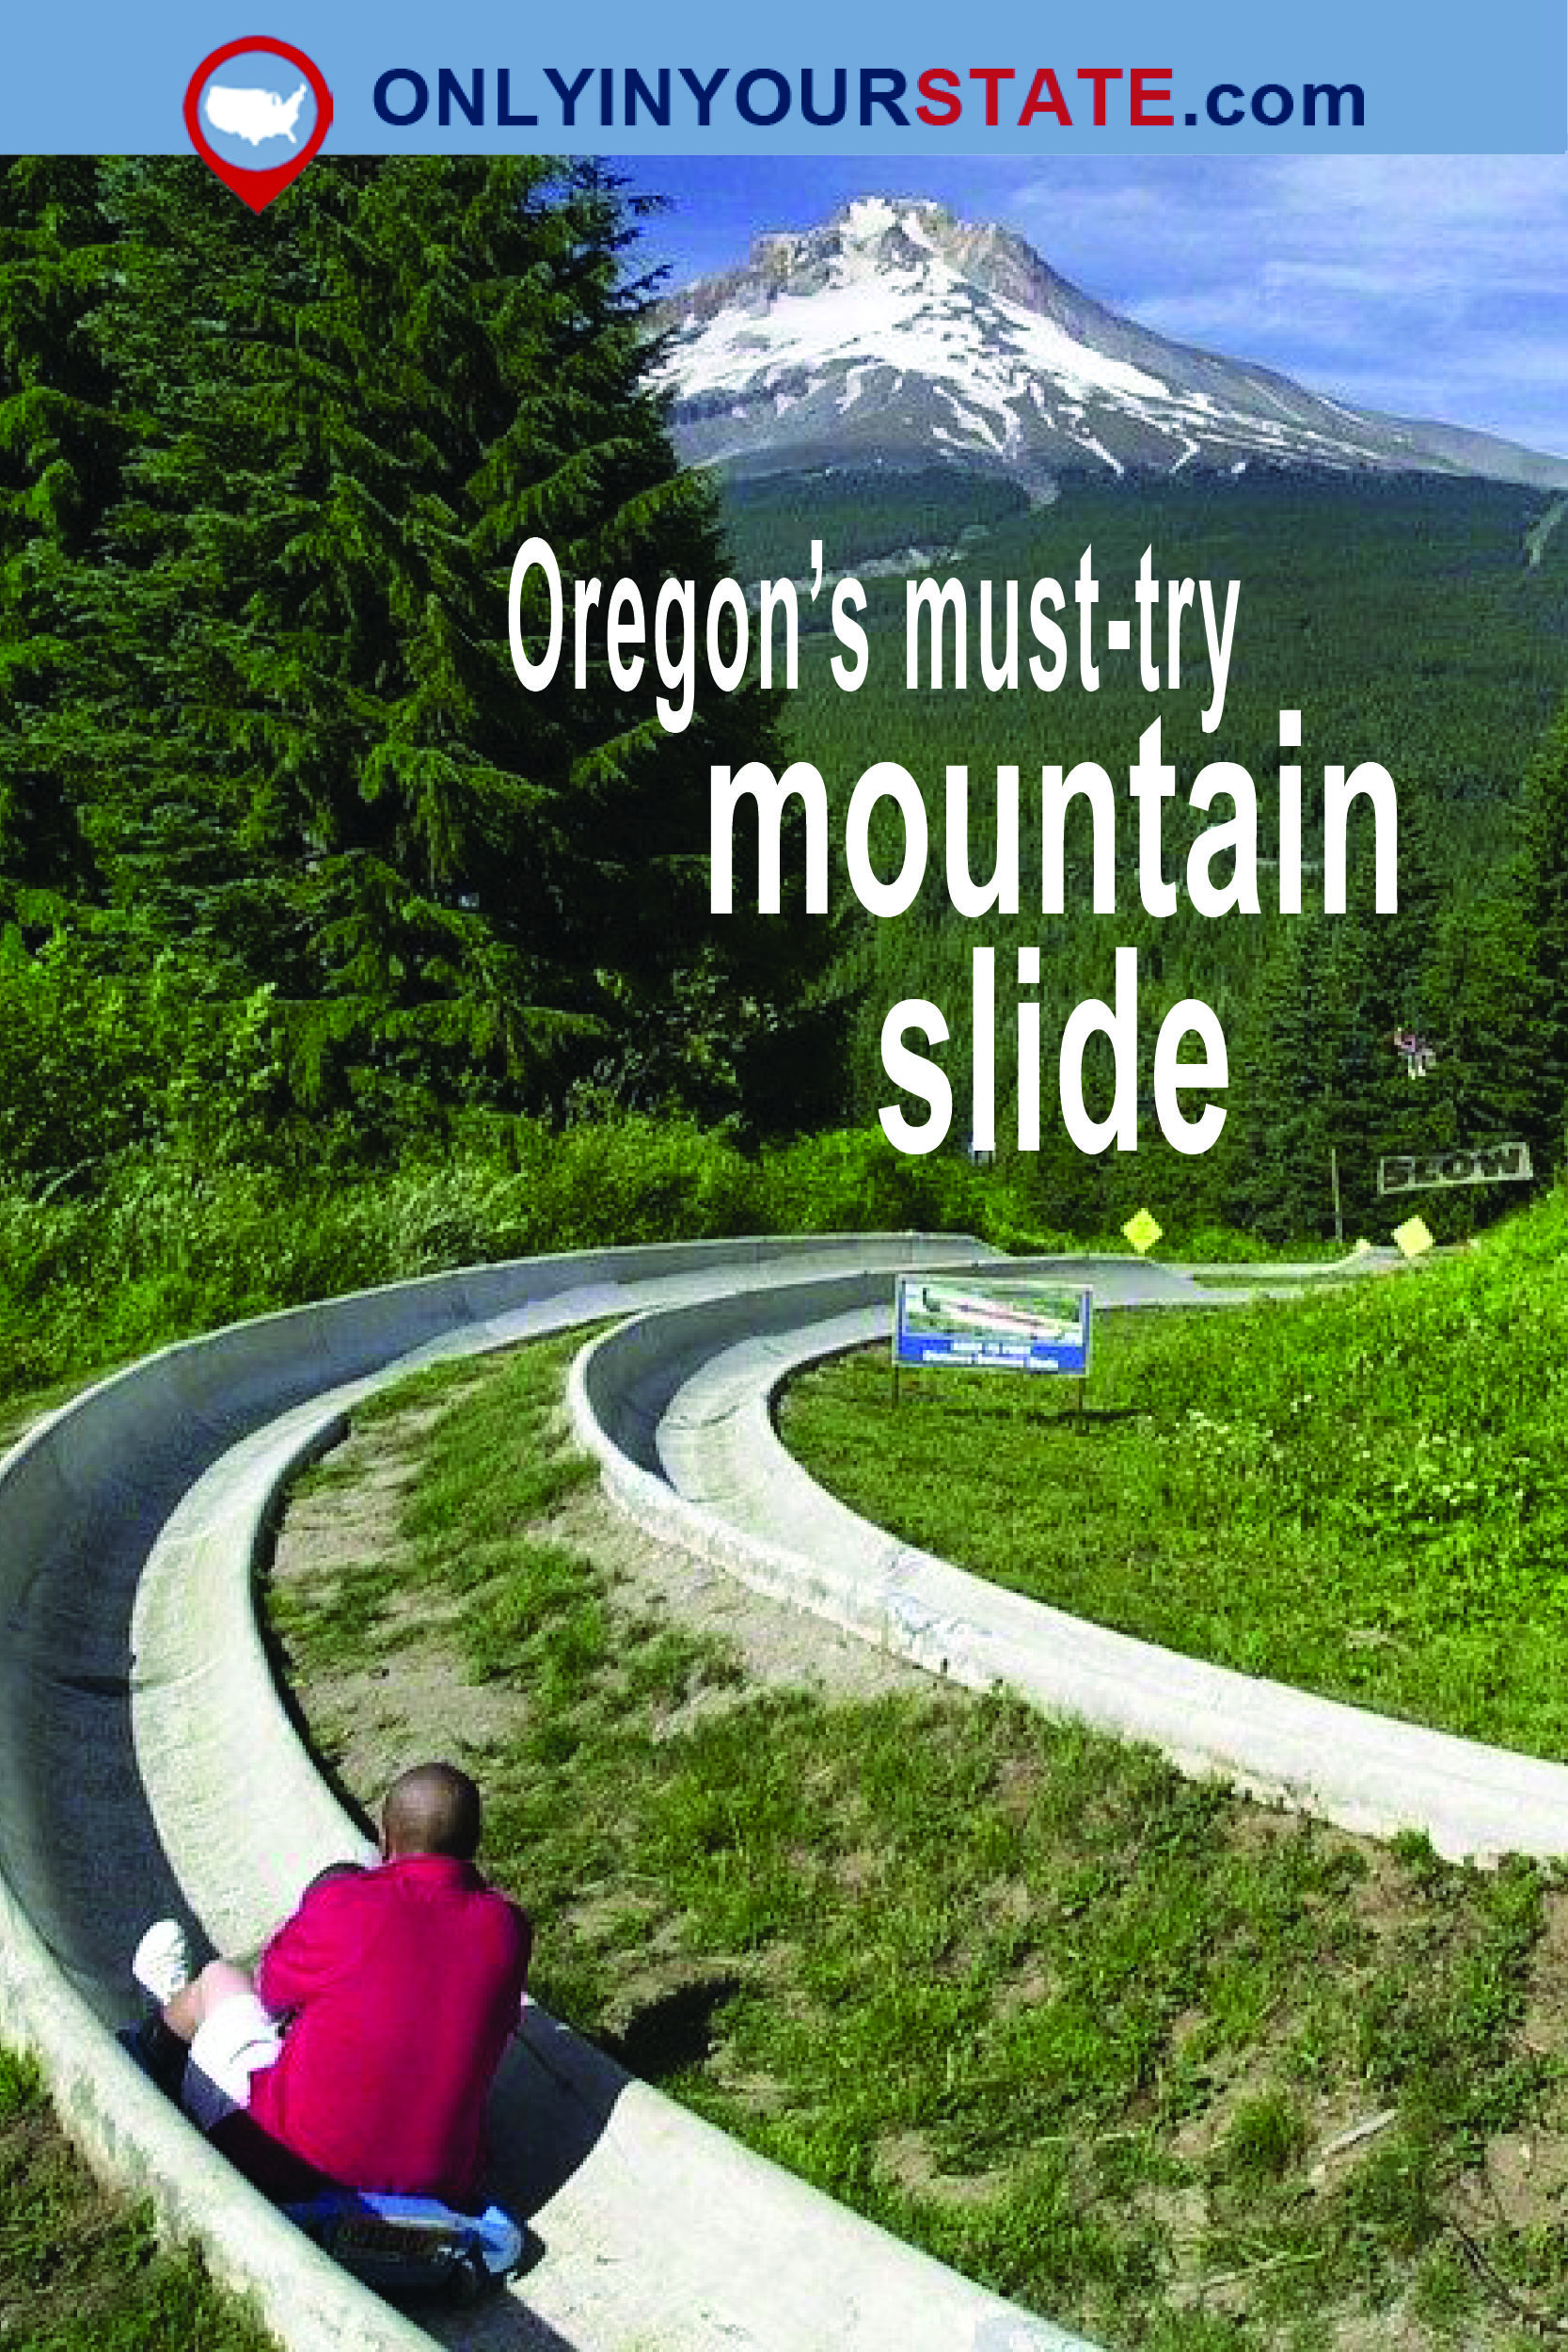 Don't Travel Without Looking At These Important Tips #oregontravel